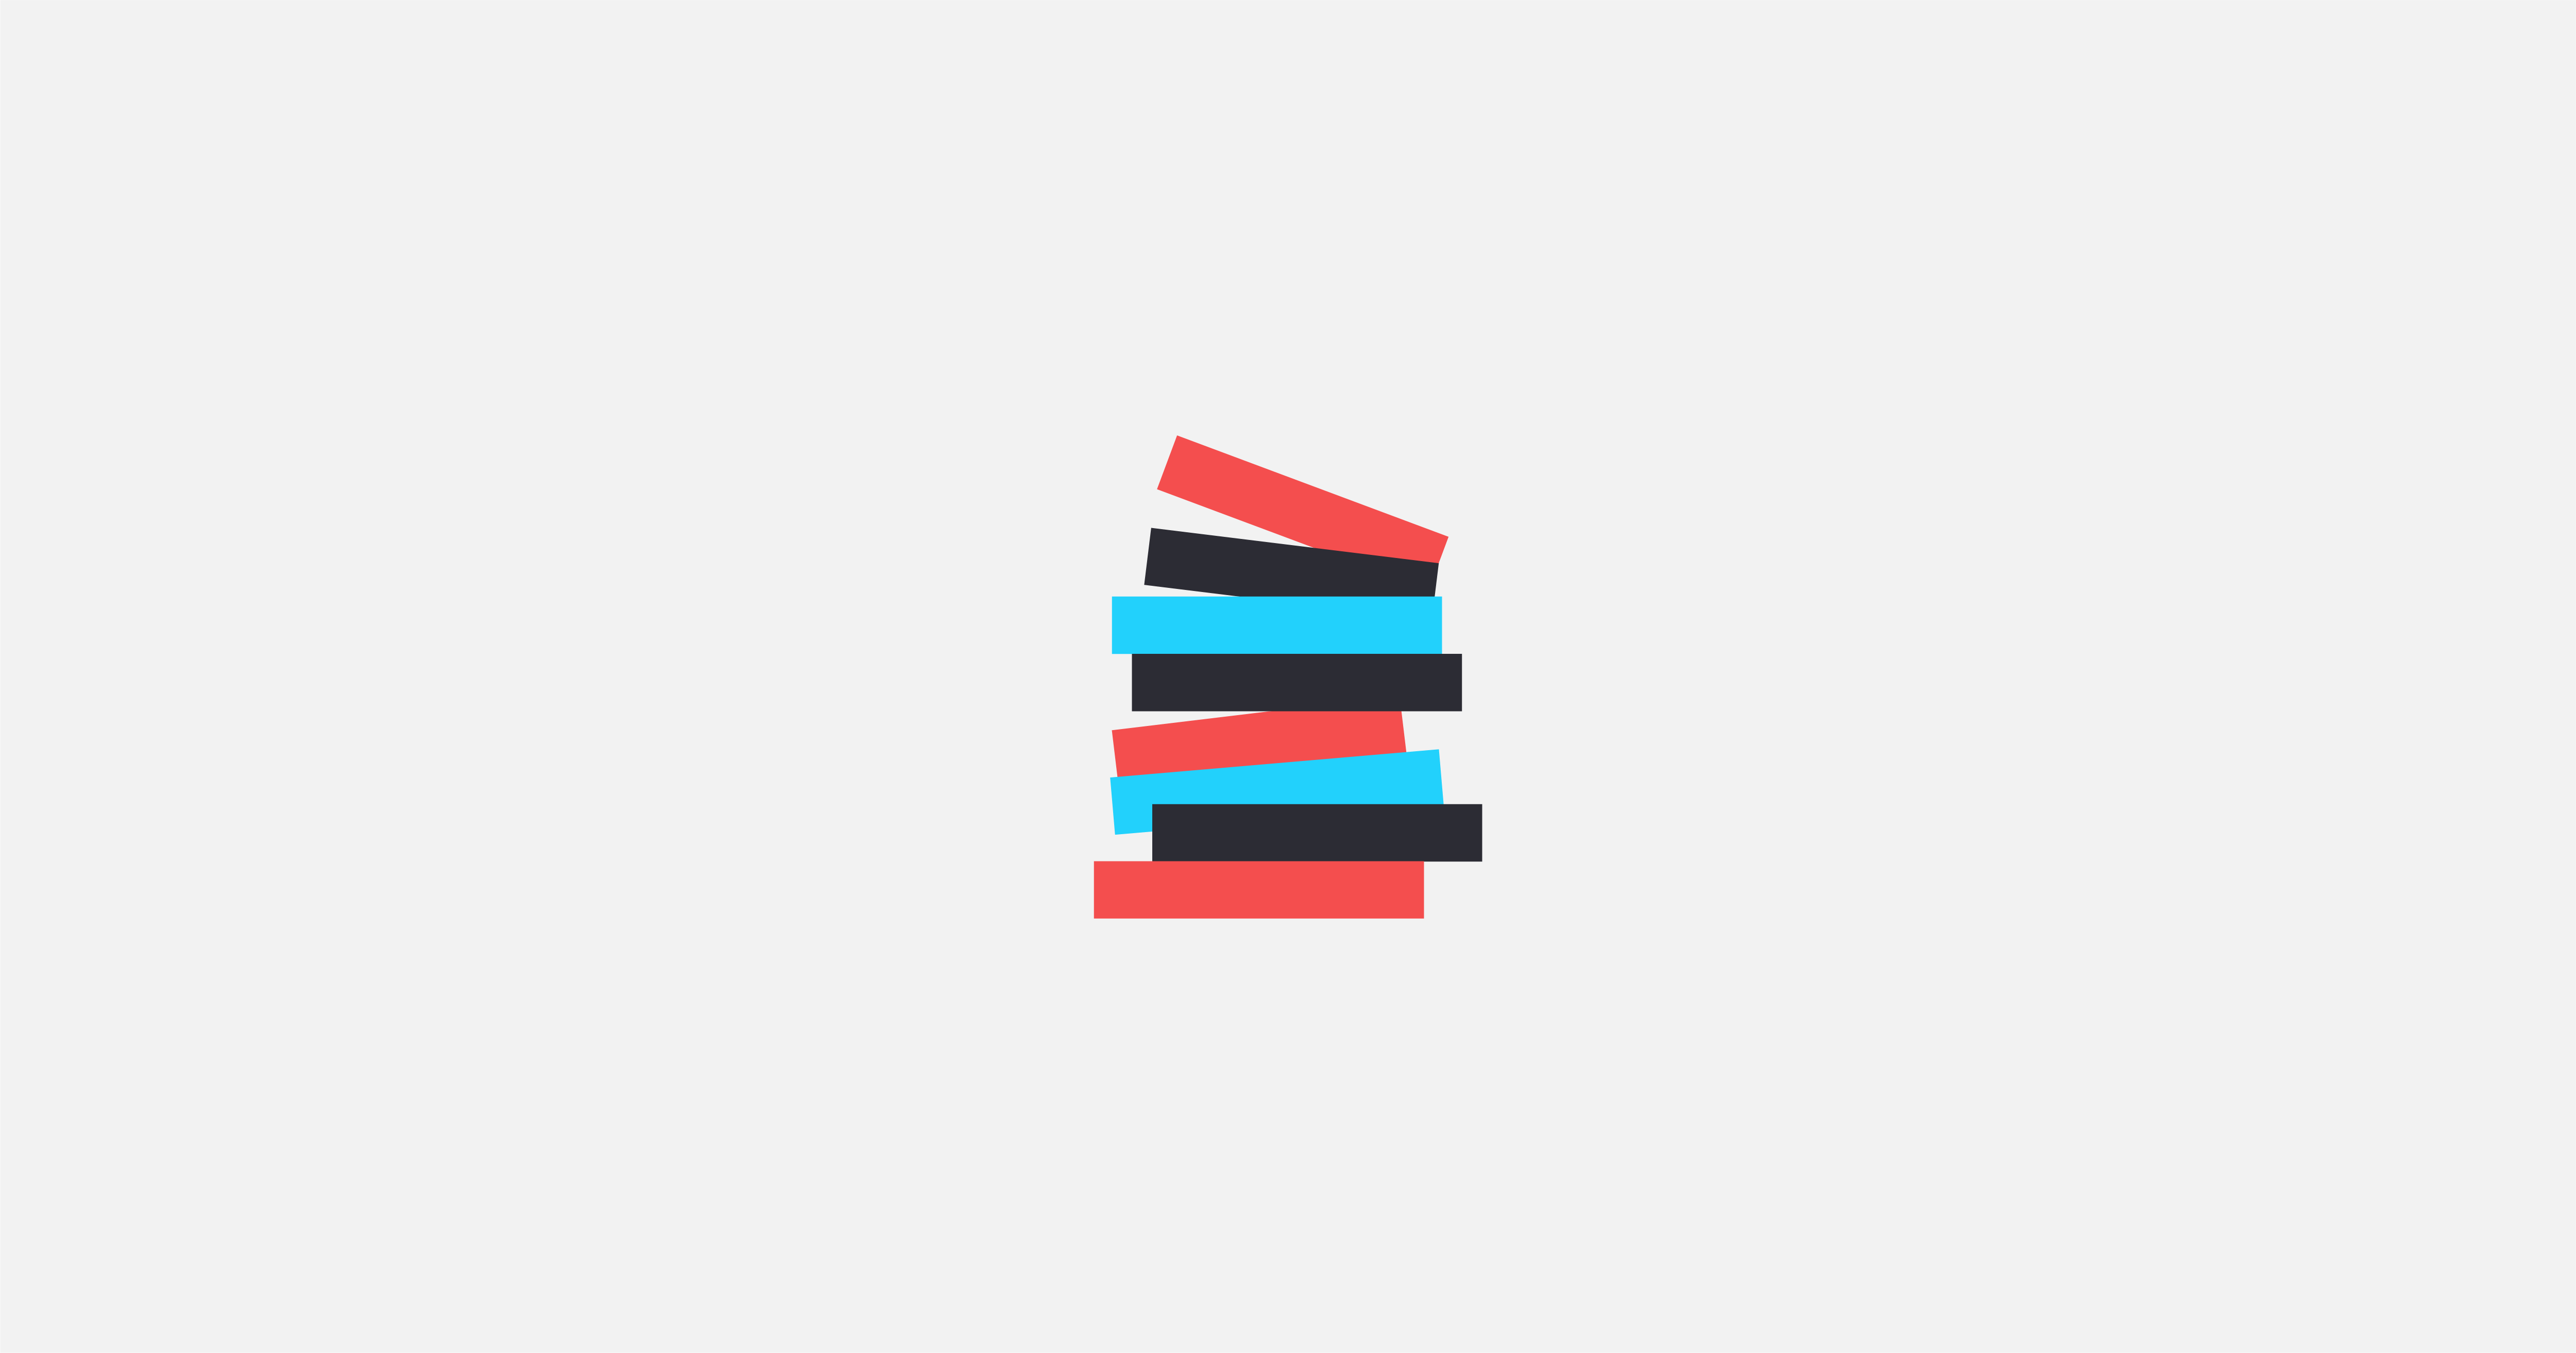 A graphic of stacked books